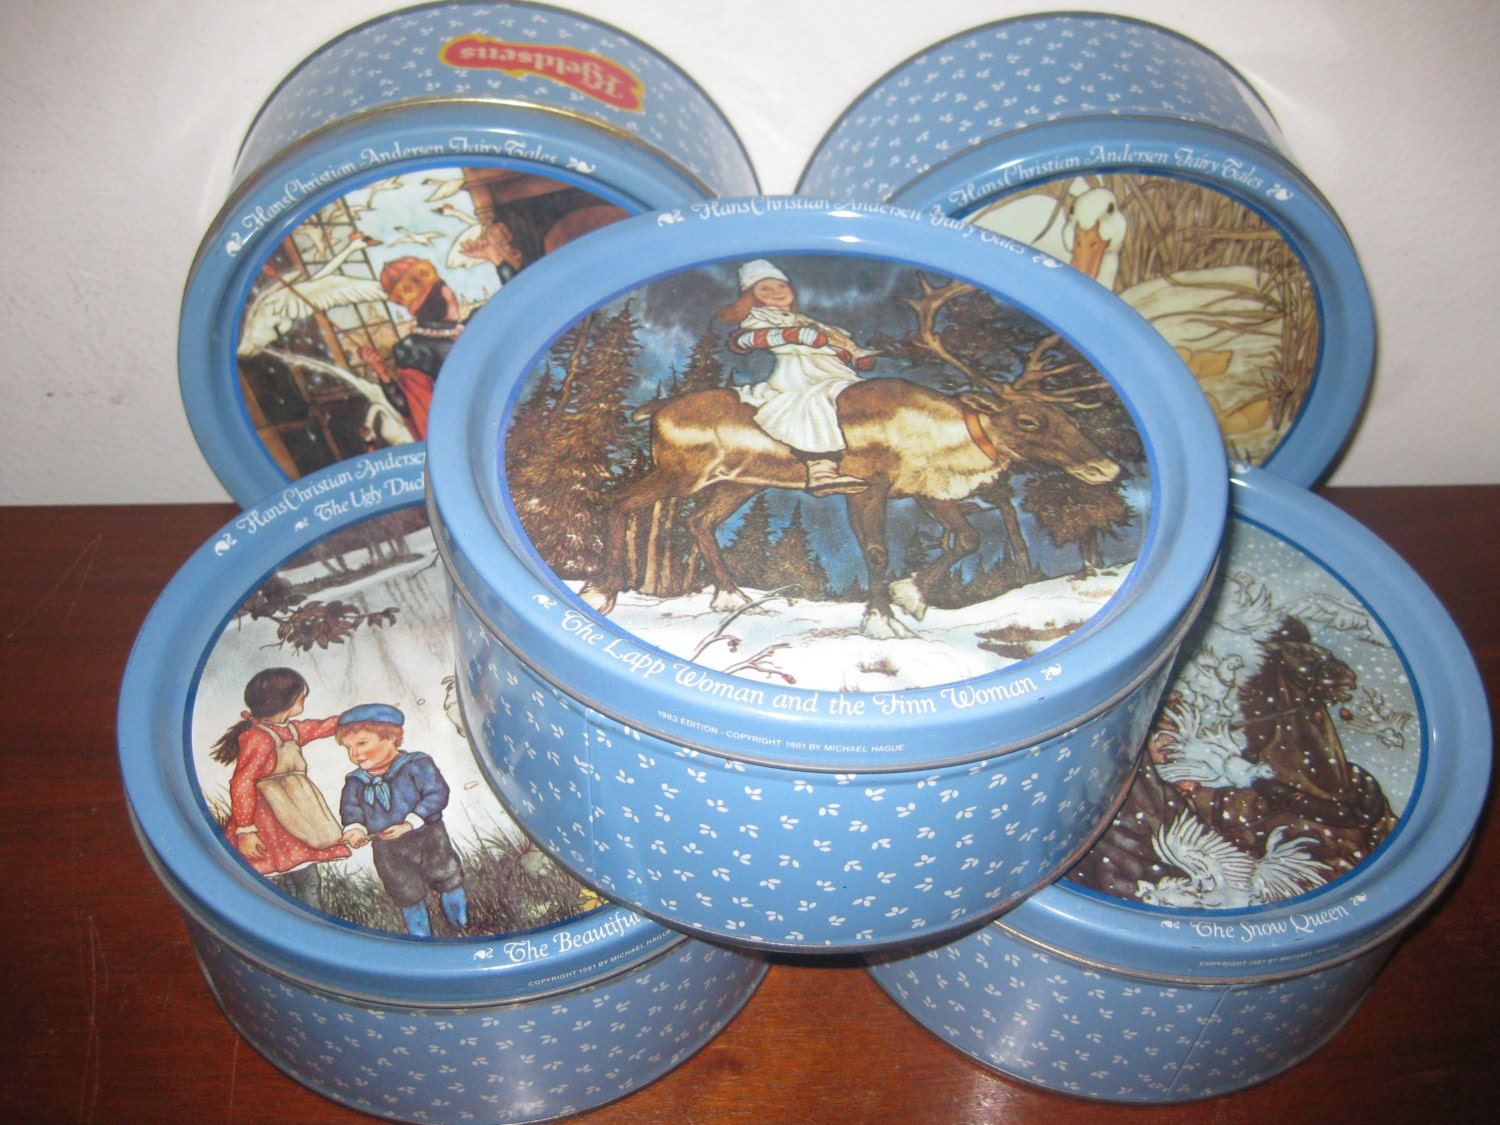 Nov 15, · Tonight I found the nice Mary Engelbreit and Paula Deen cookie tins on 60% off clearance at Michaels. They are tins with the clear windows in the lids. The large size was $ and the small size was $